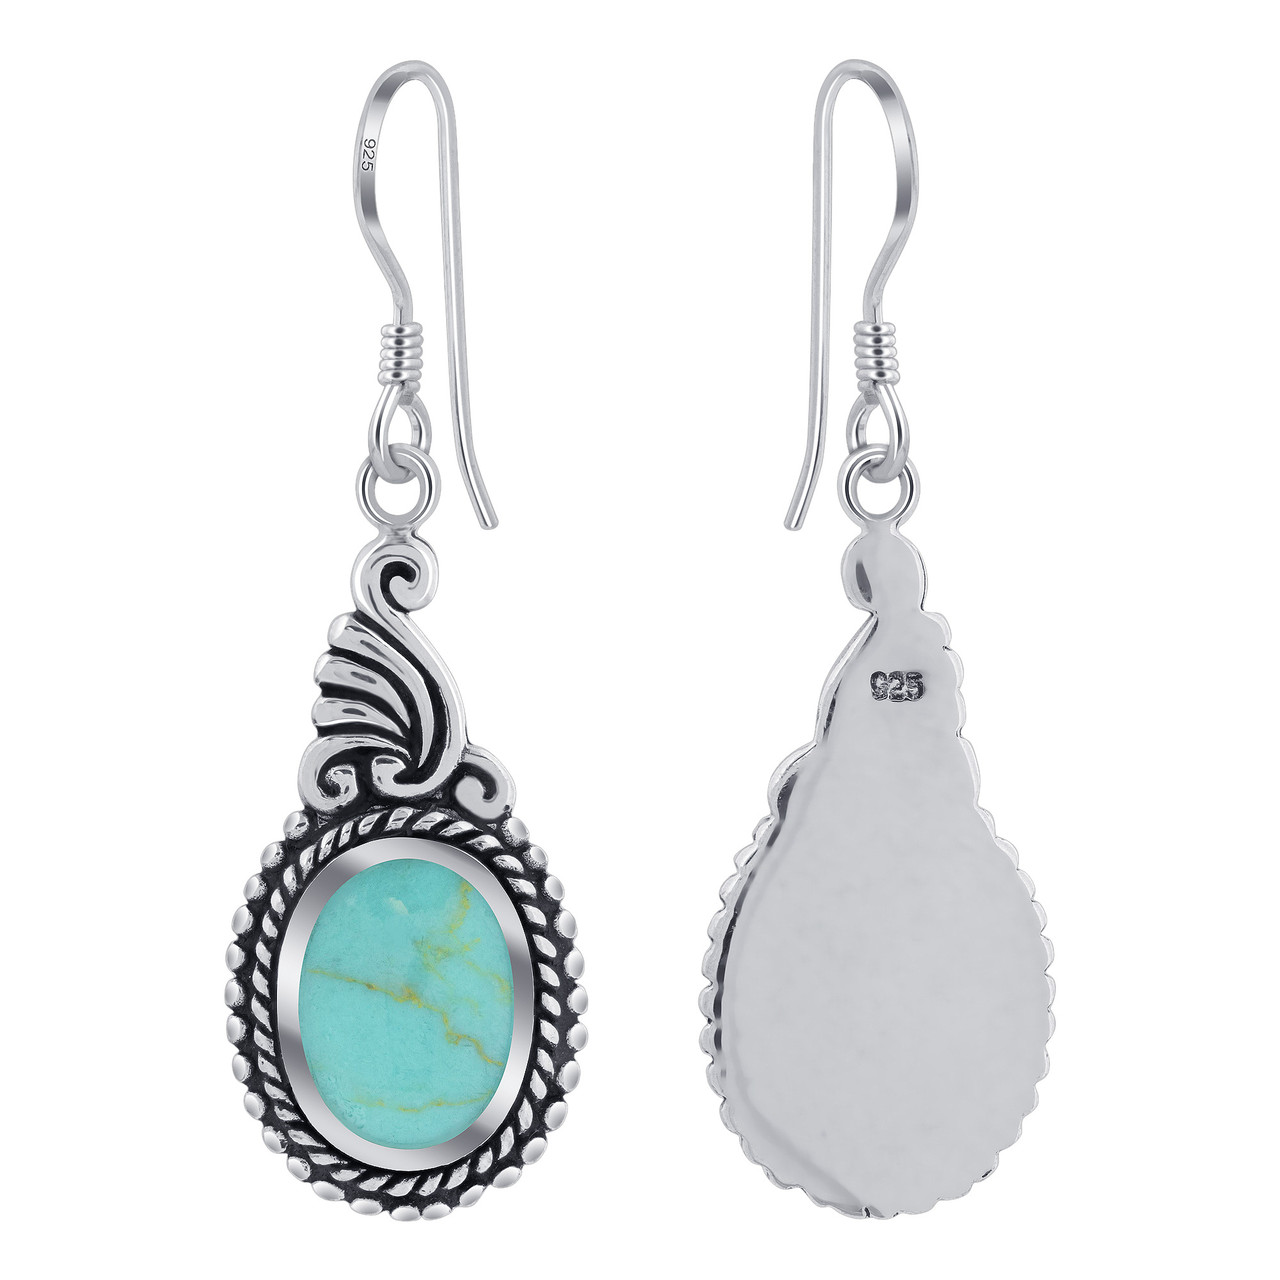 925 Sterling Silver Dangle Earrings with Synthetic Turquoise